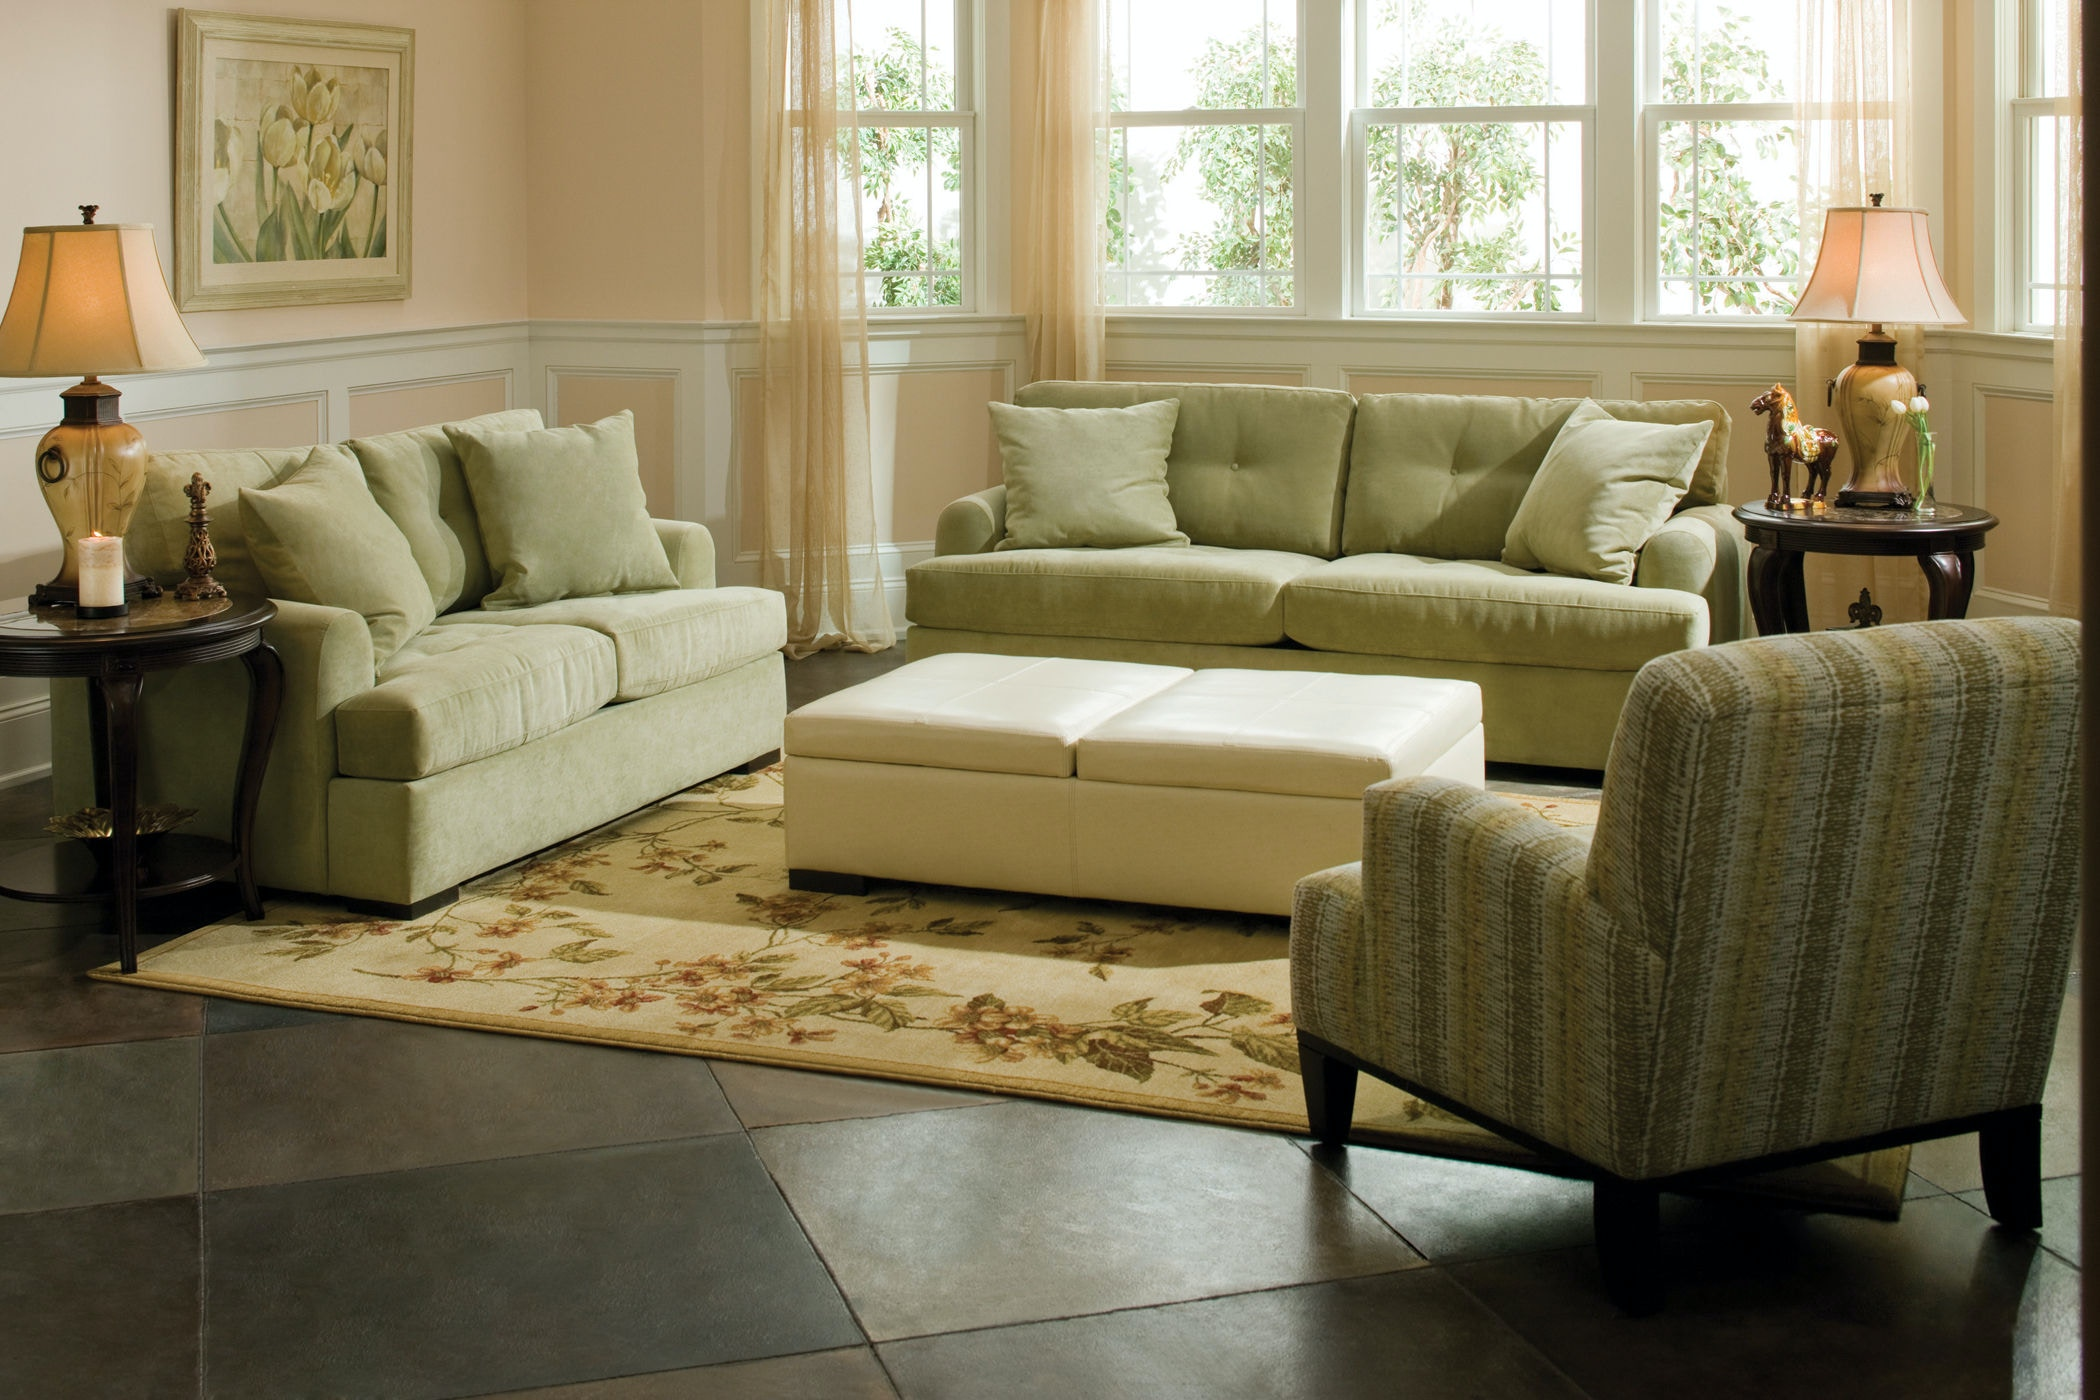 Loveseat : crosby sectional - Sectionals, Sofas & Couches